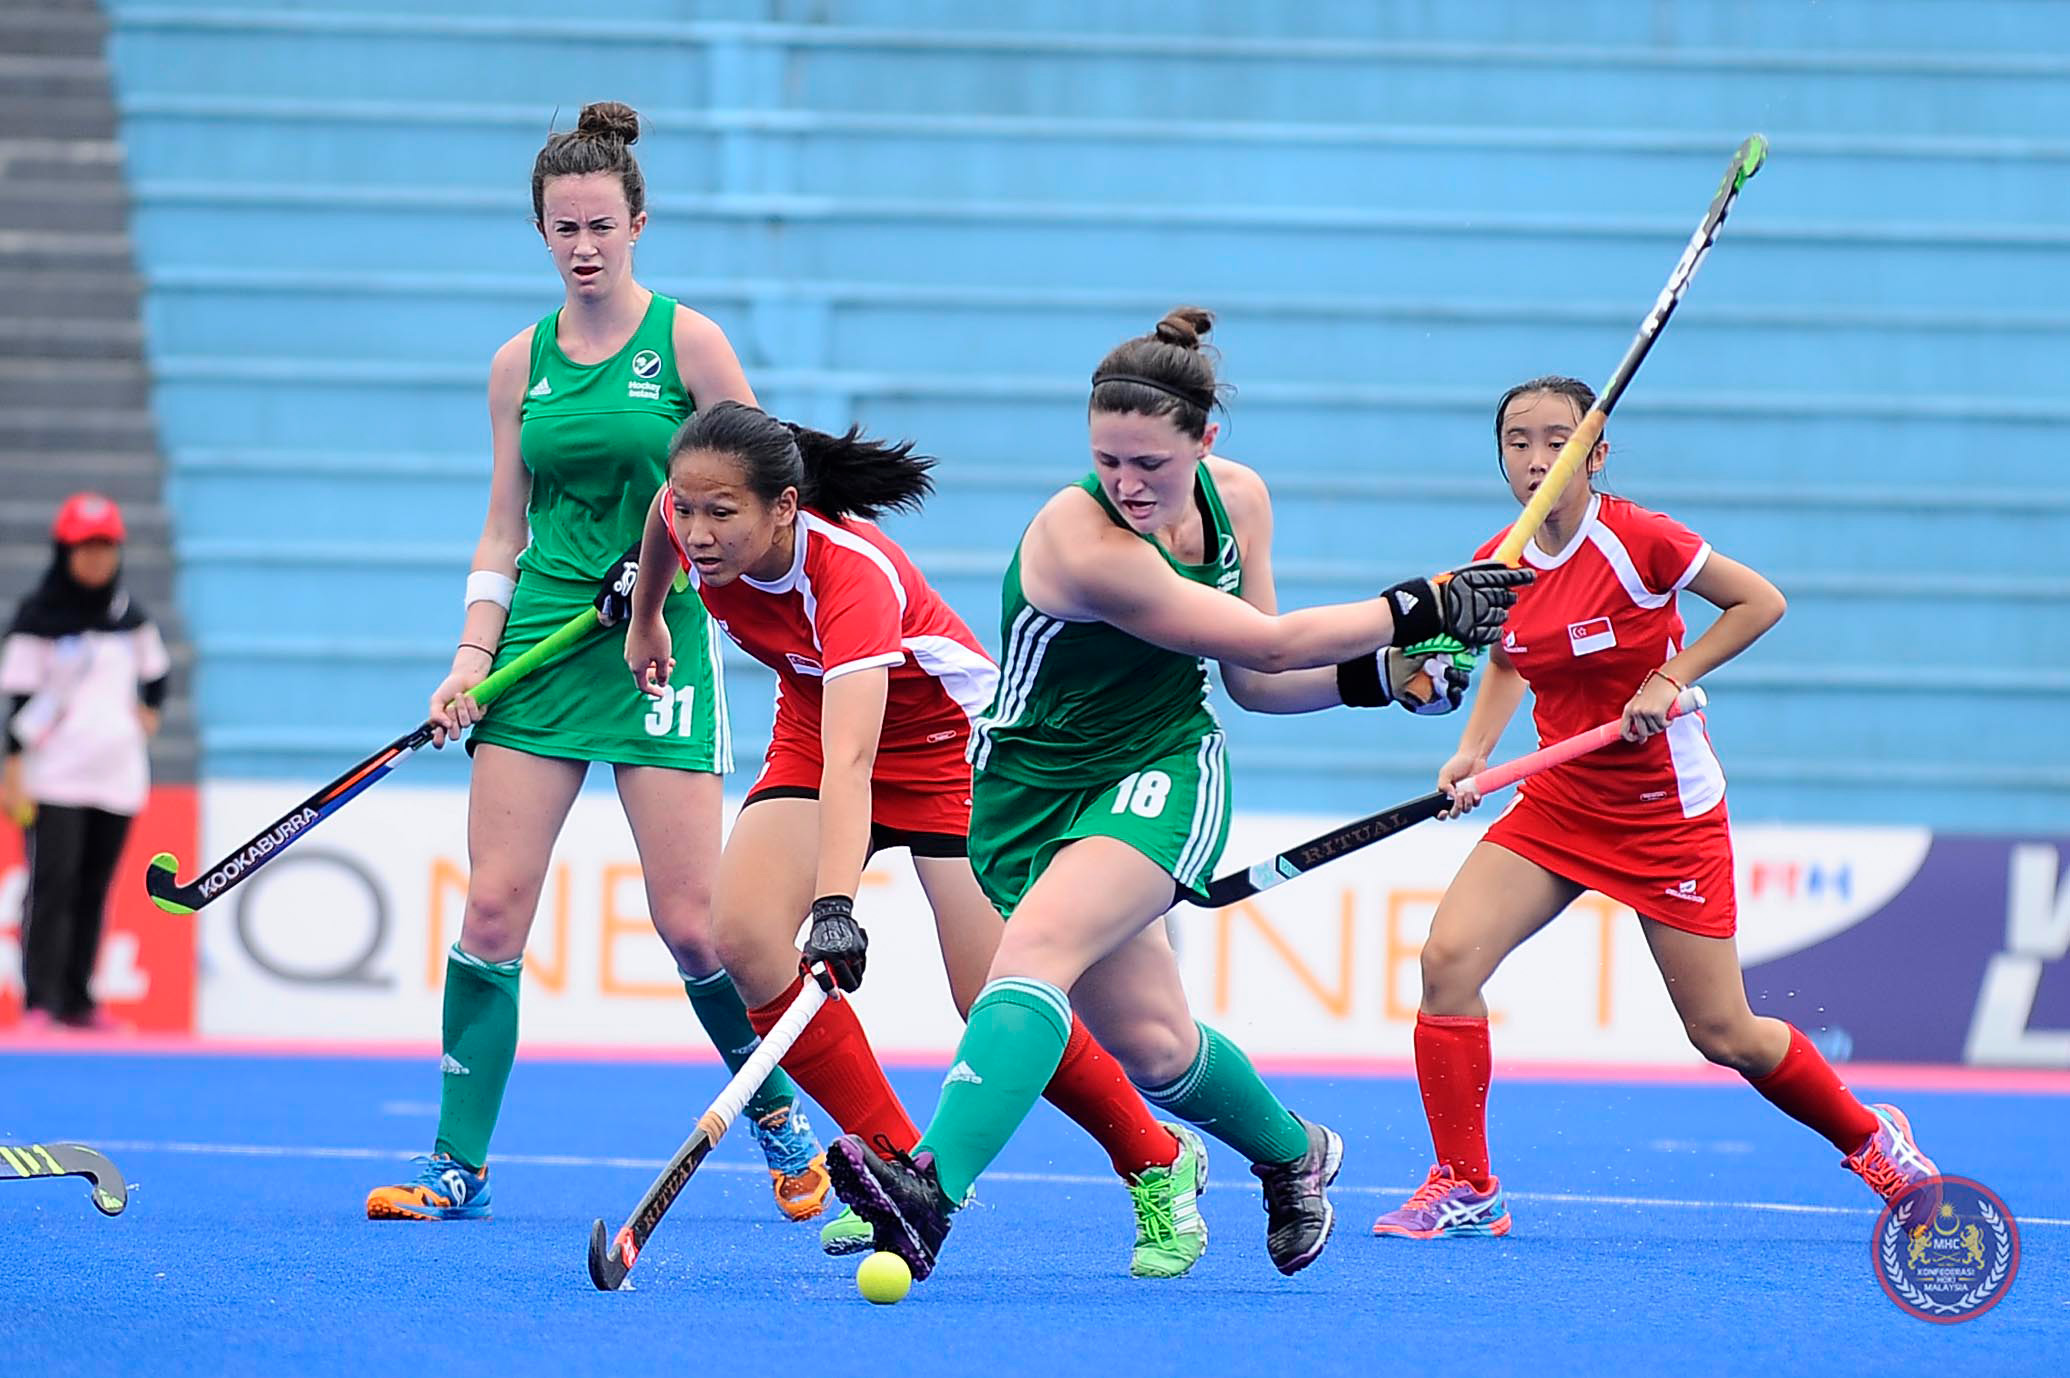 Former UConn standout Roisin Upton '16 (ED) swings at the ball during a game against Hong Kong in South Africa in January. Since graduating, Upton traded her UConn blue jersey for the green of the Irish National Team.